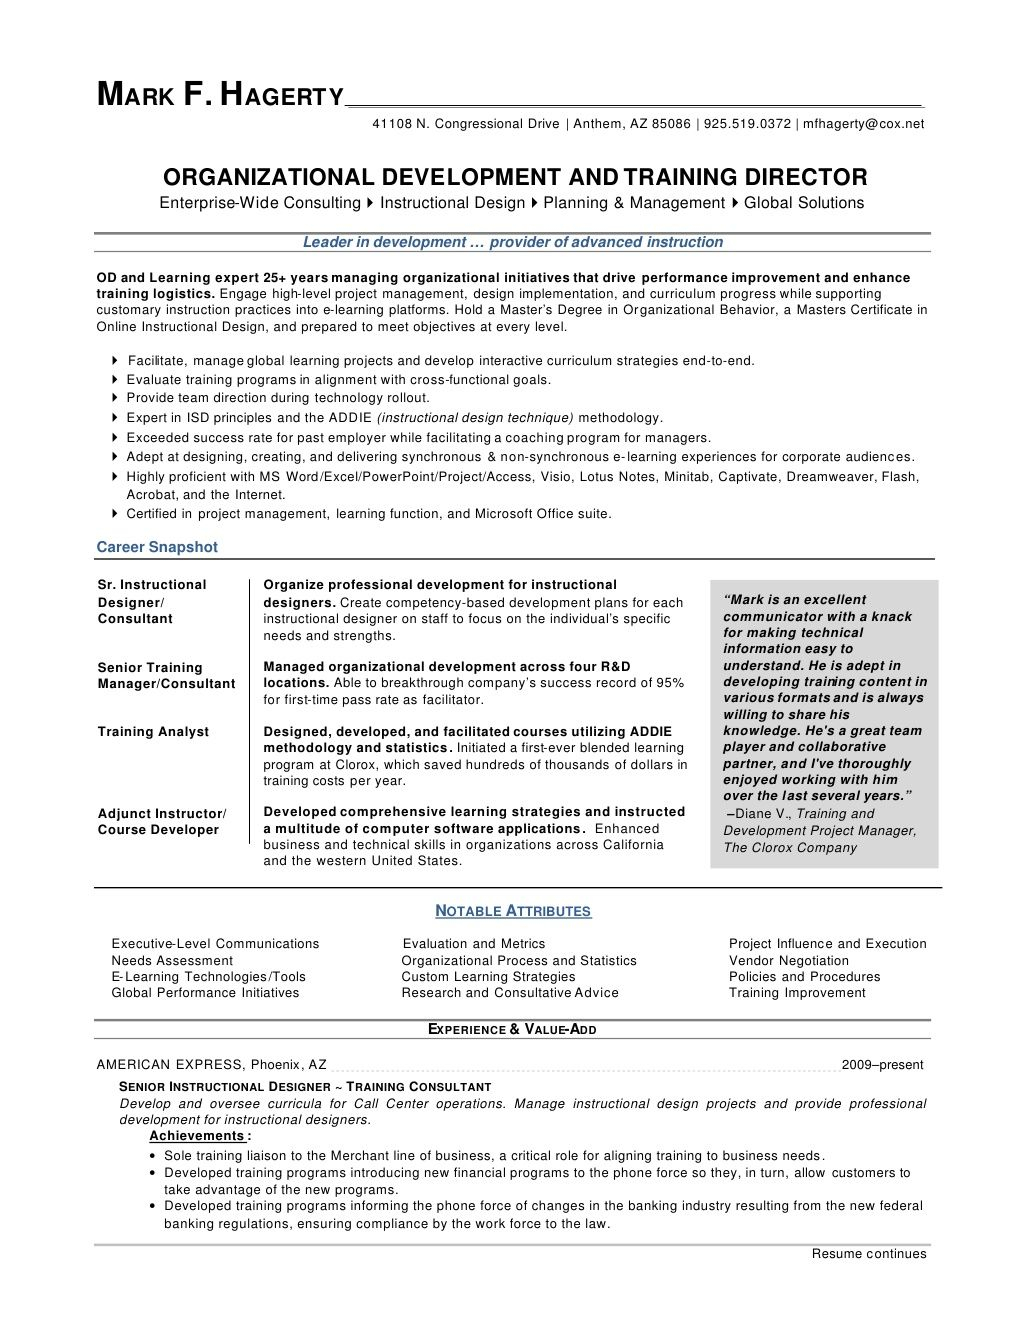 Sample Project Manager Resume - Mark F Hagerty Od Training Director Resume by Mfhagerty Via